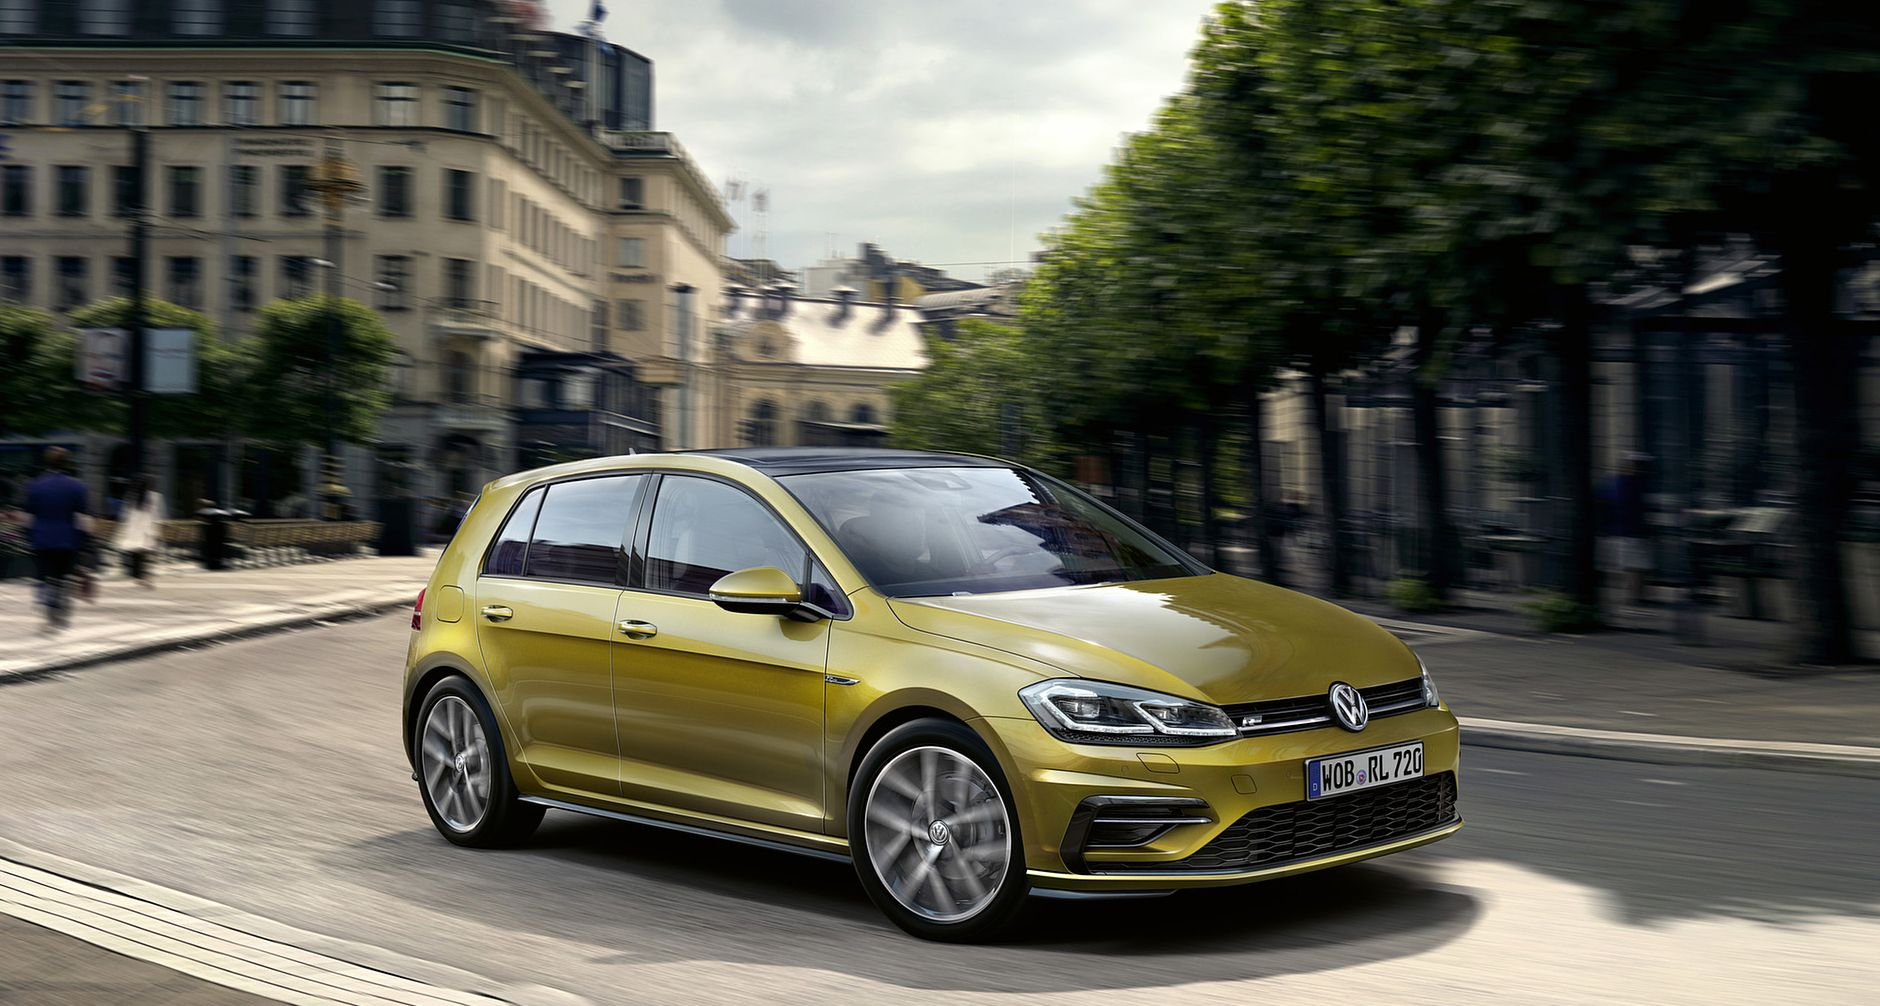 Volkswagen Nouvelle Golf 8 Plessis Robinson